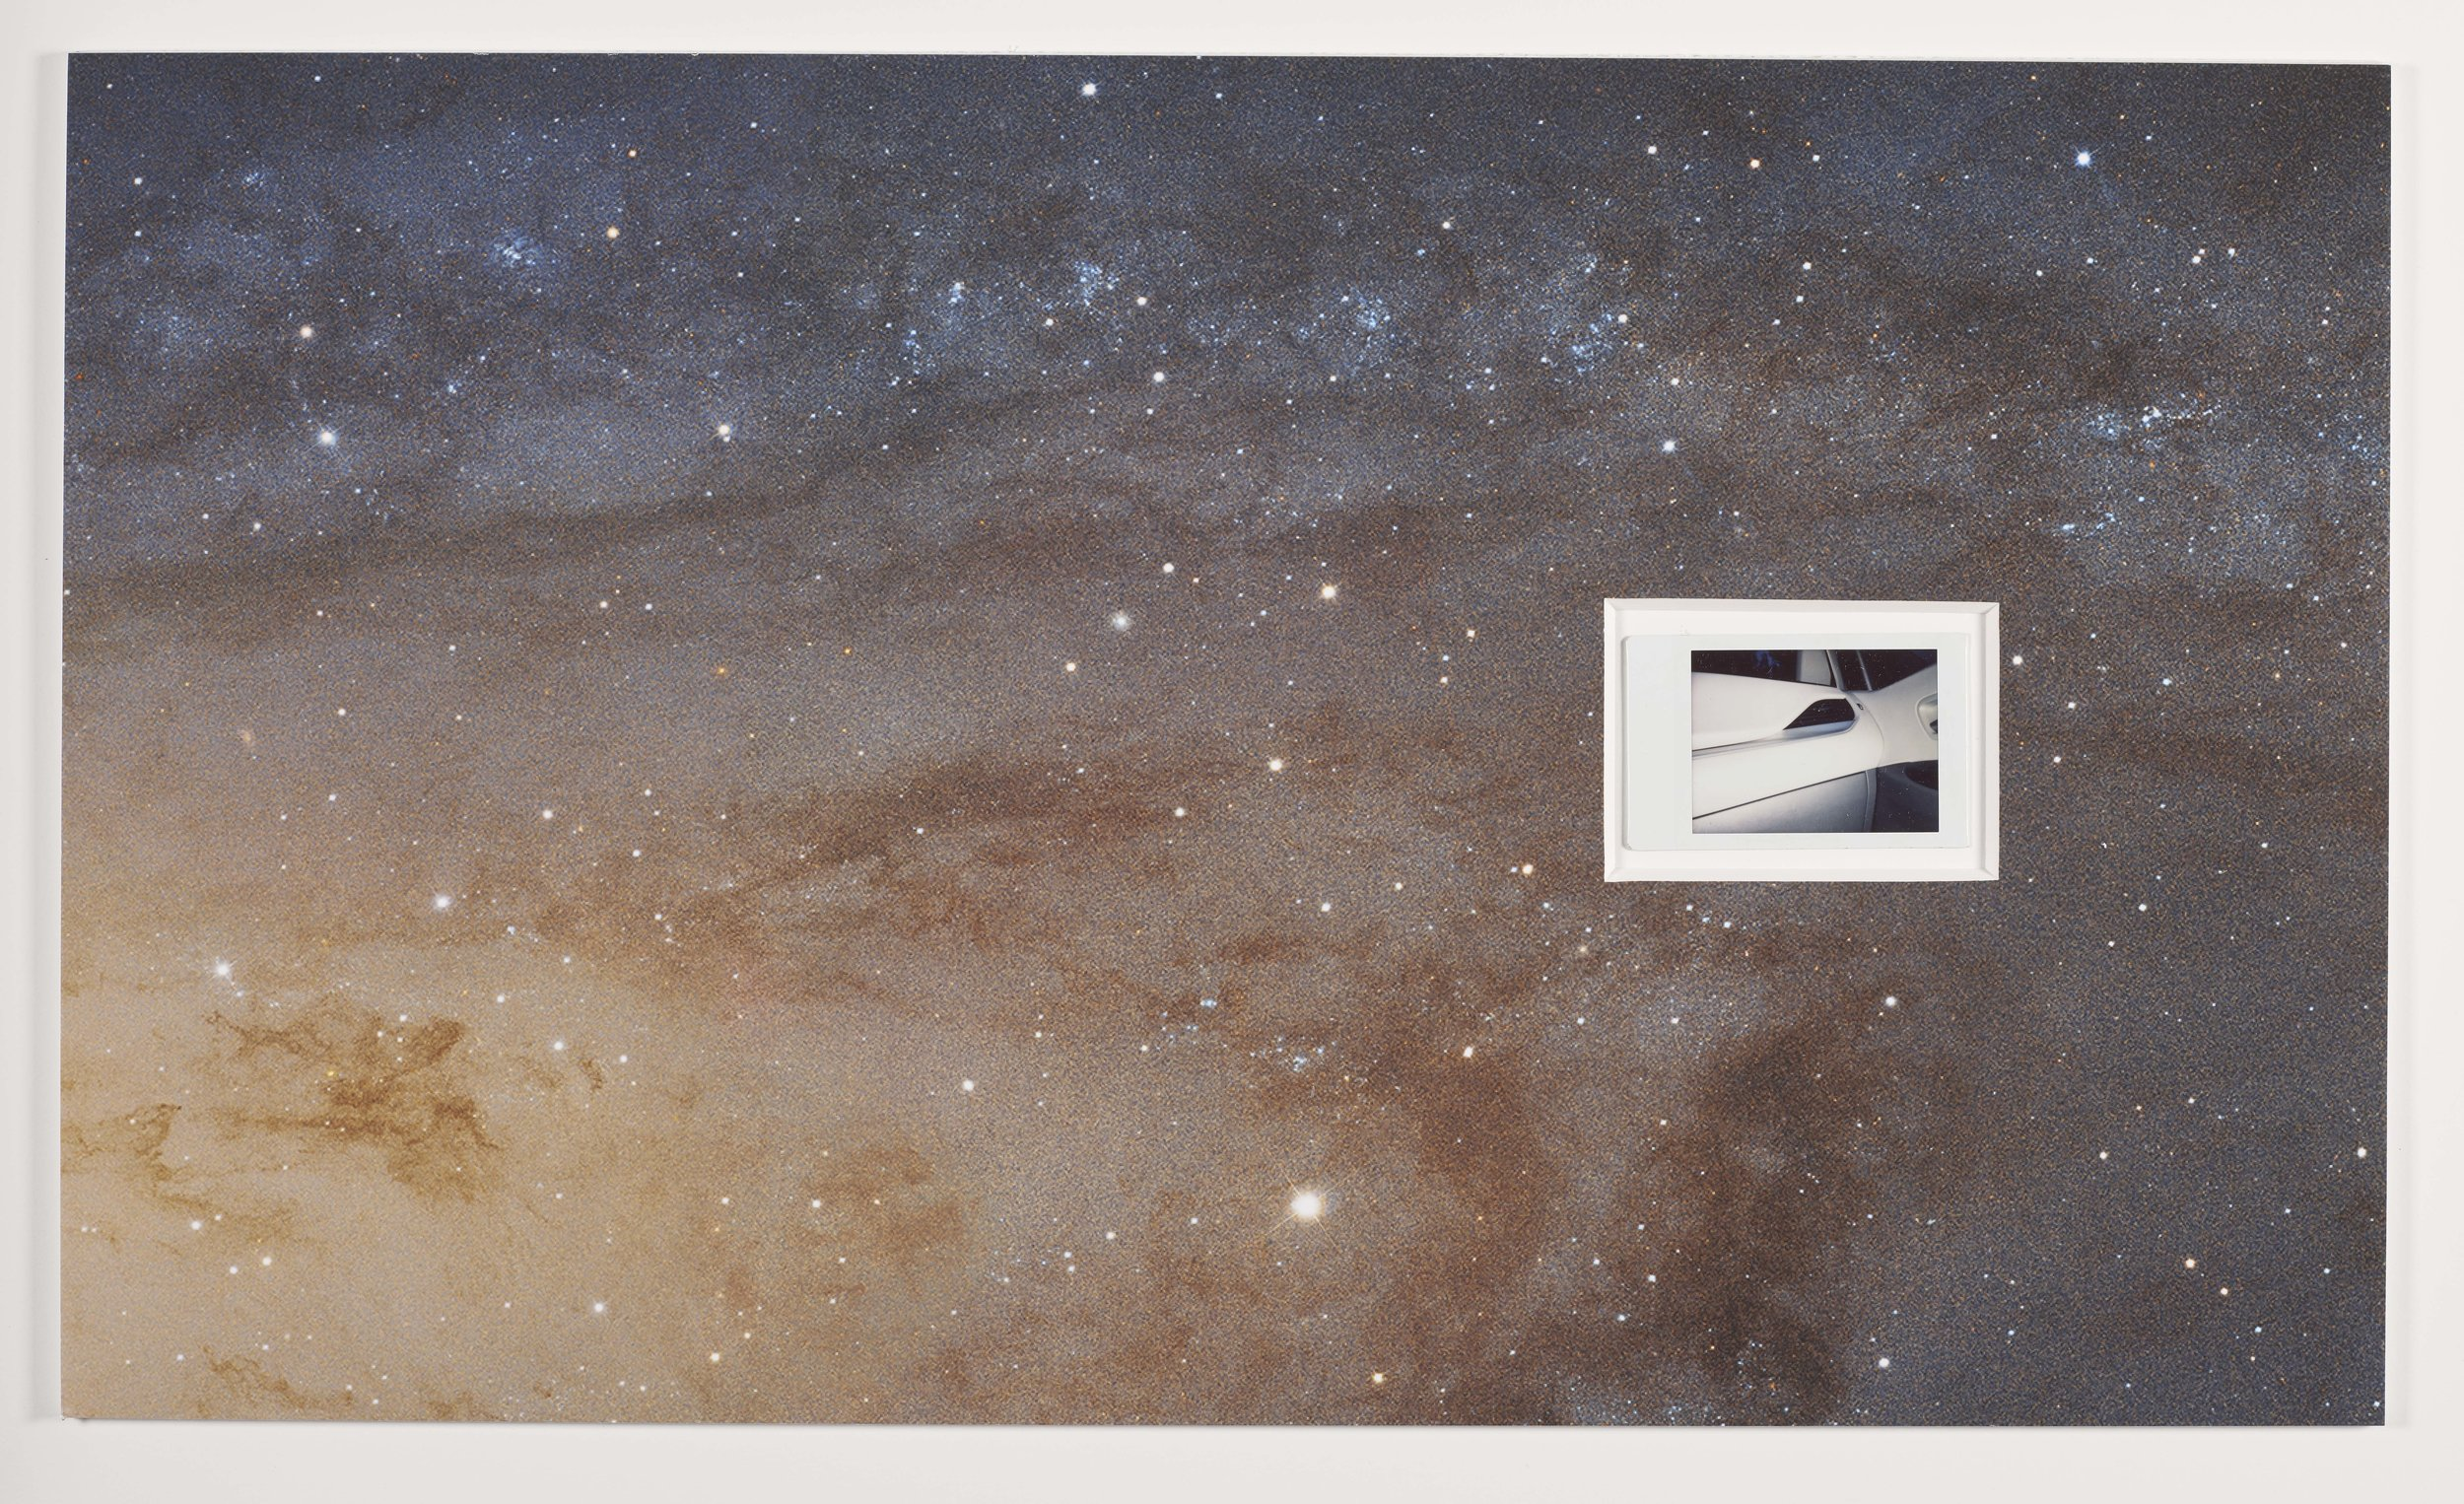 """all of it  (Andromeda and car interior) - 17"""" x 30"""" - Andromeda Galaxy photo (cropped) taken by the NASA/ESA Hubble Space Telescope on January 5th, 2015 containing 1.5 billion pixels in the full image, dry mounted to 8 ply mat board and found polaroid photograph - 2018"""